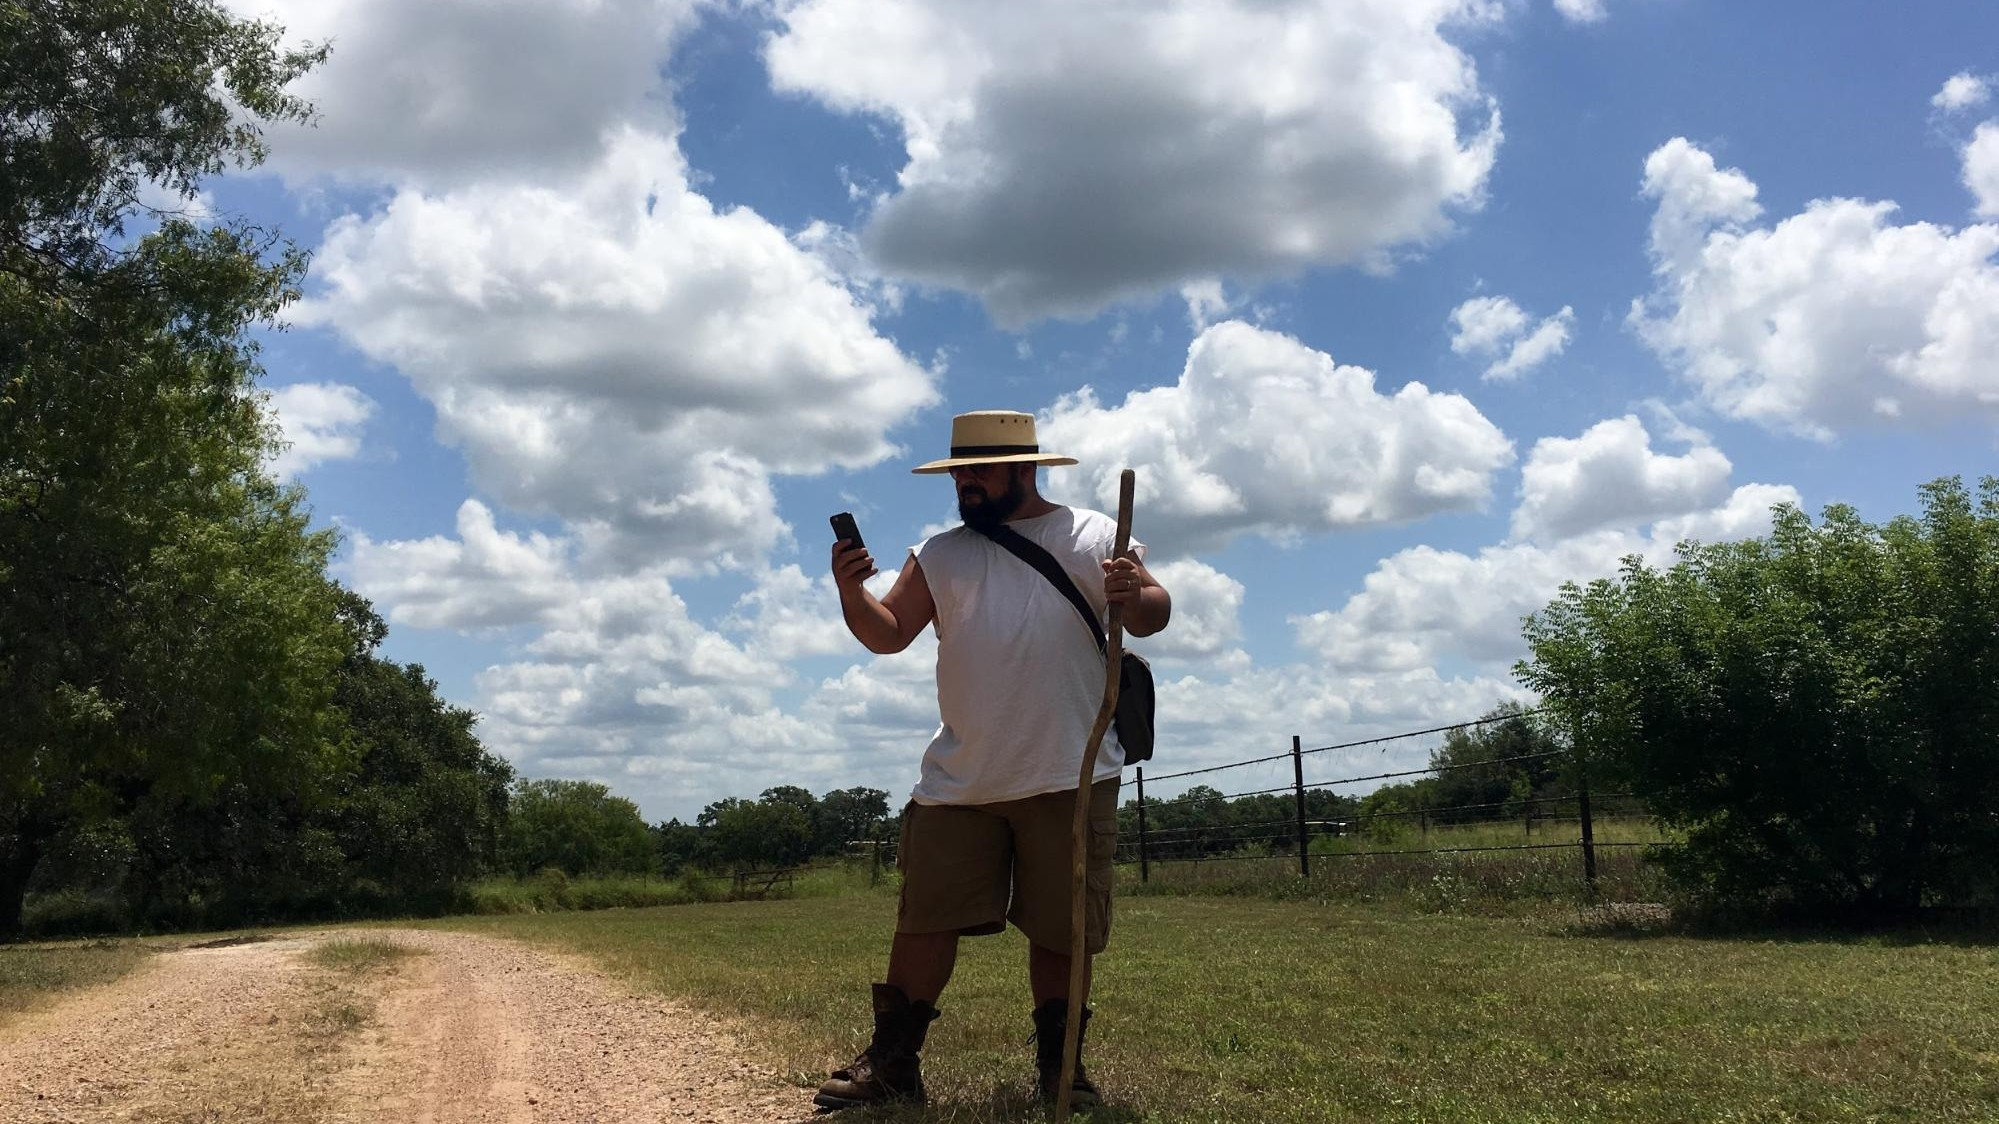 'Pokémon Go' in Rural Texas Is a Different Kind of Fun